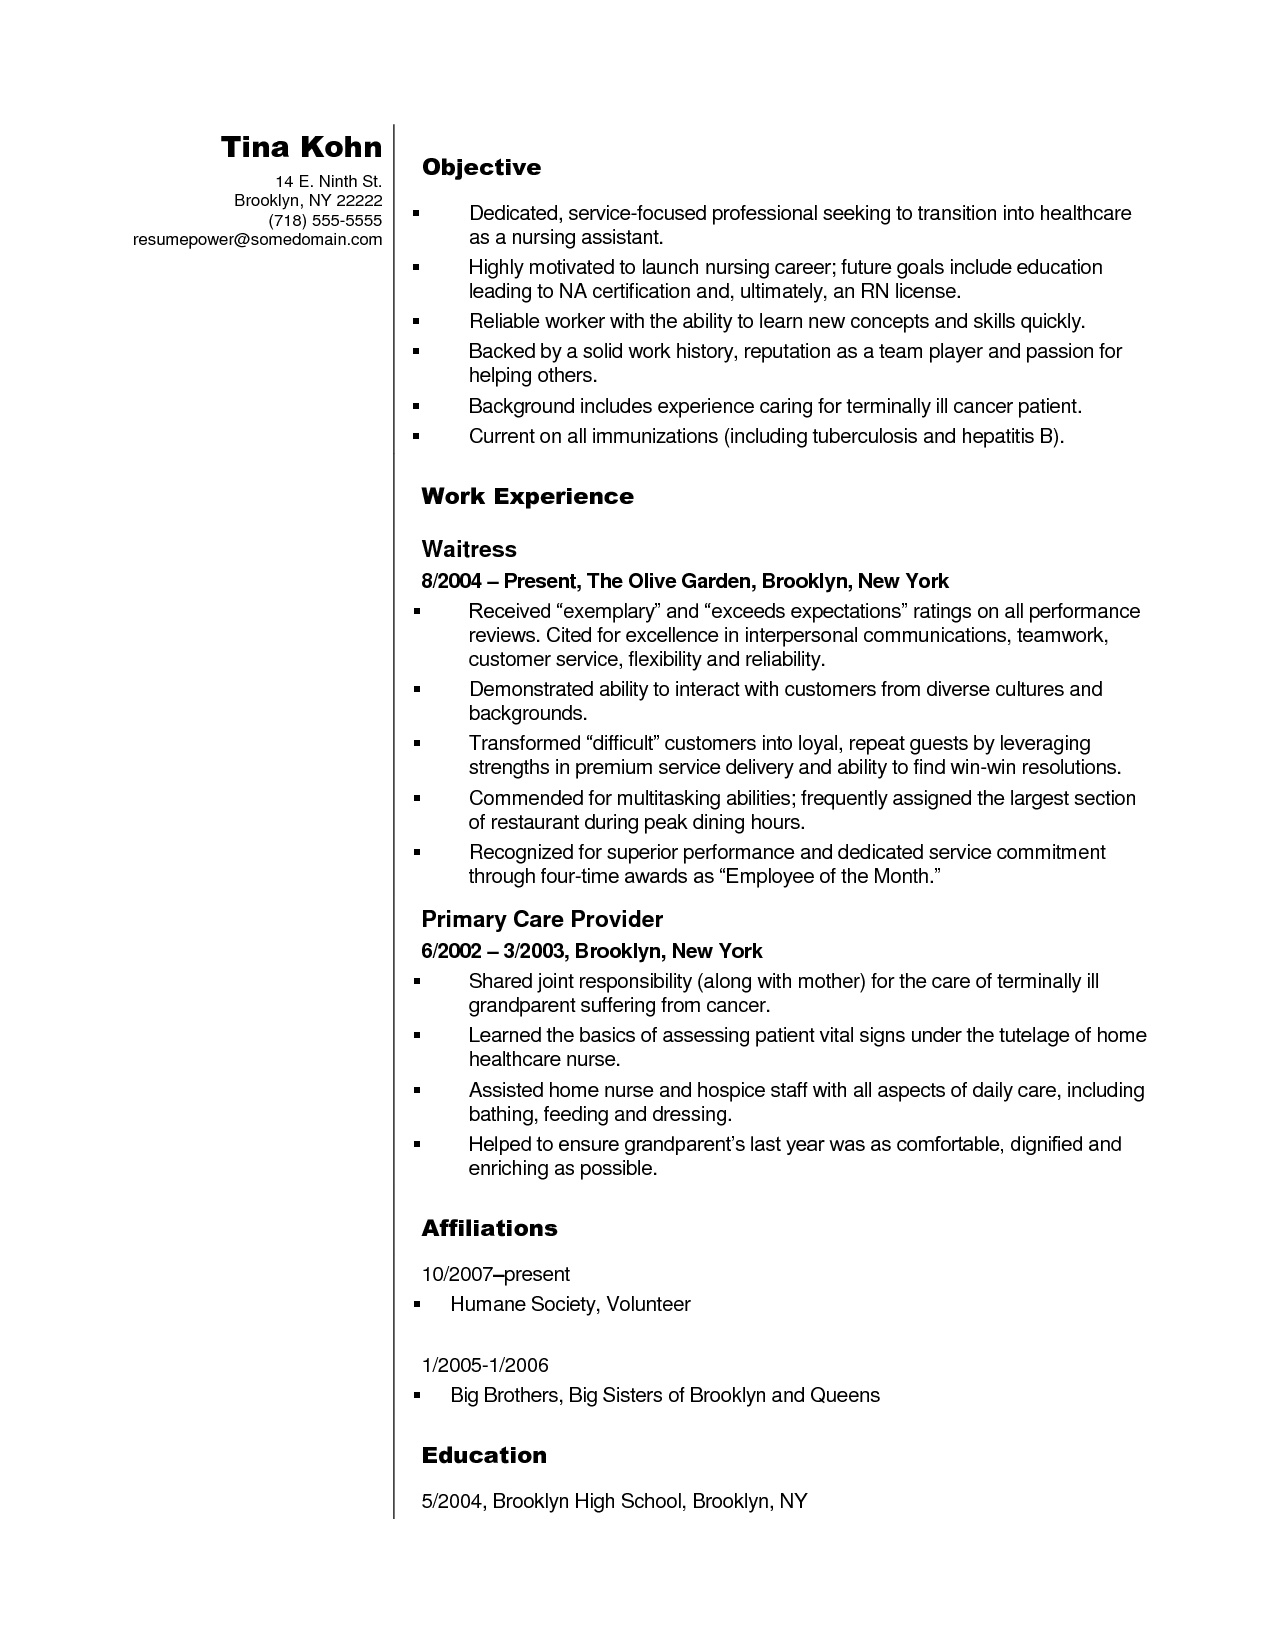 Cna Resume No Experience - Nursing assistant Resume Objective Examples Fresh Cna Resume Sample